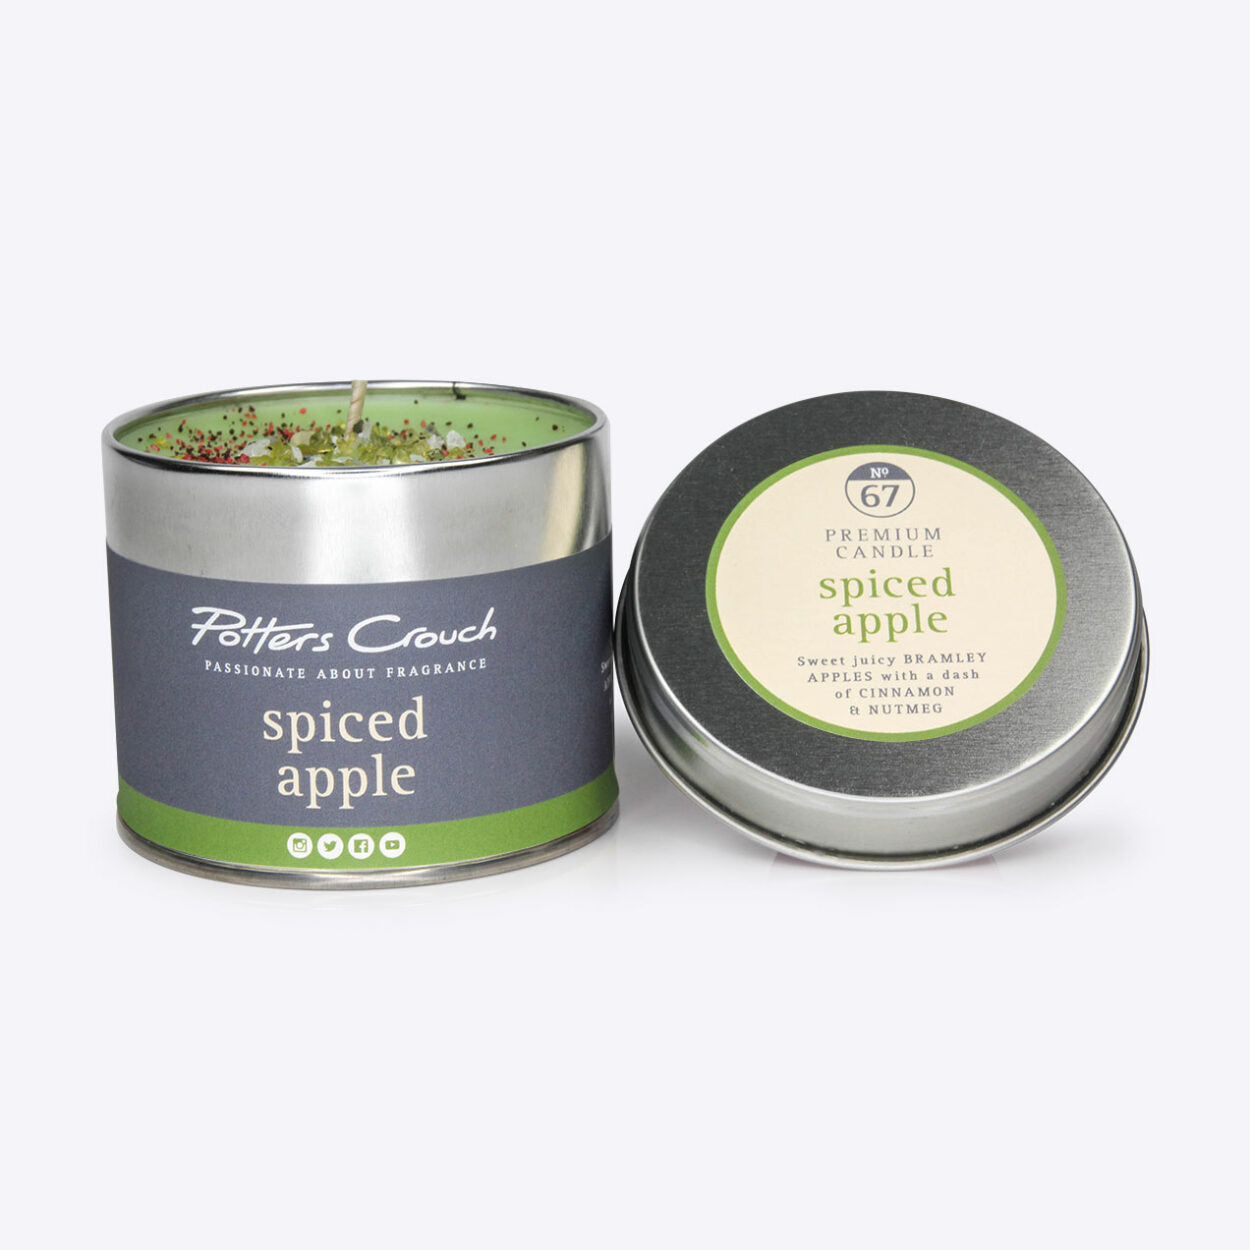 Spiced Apple Scented Candle in a Tin